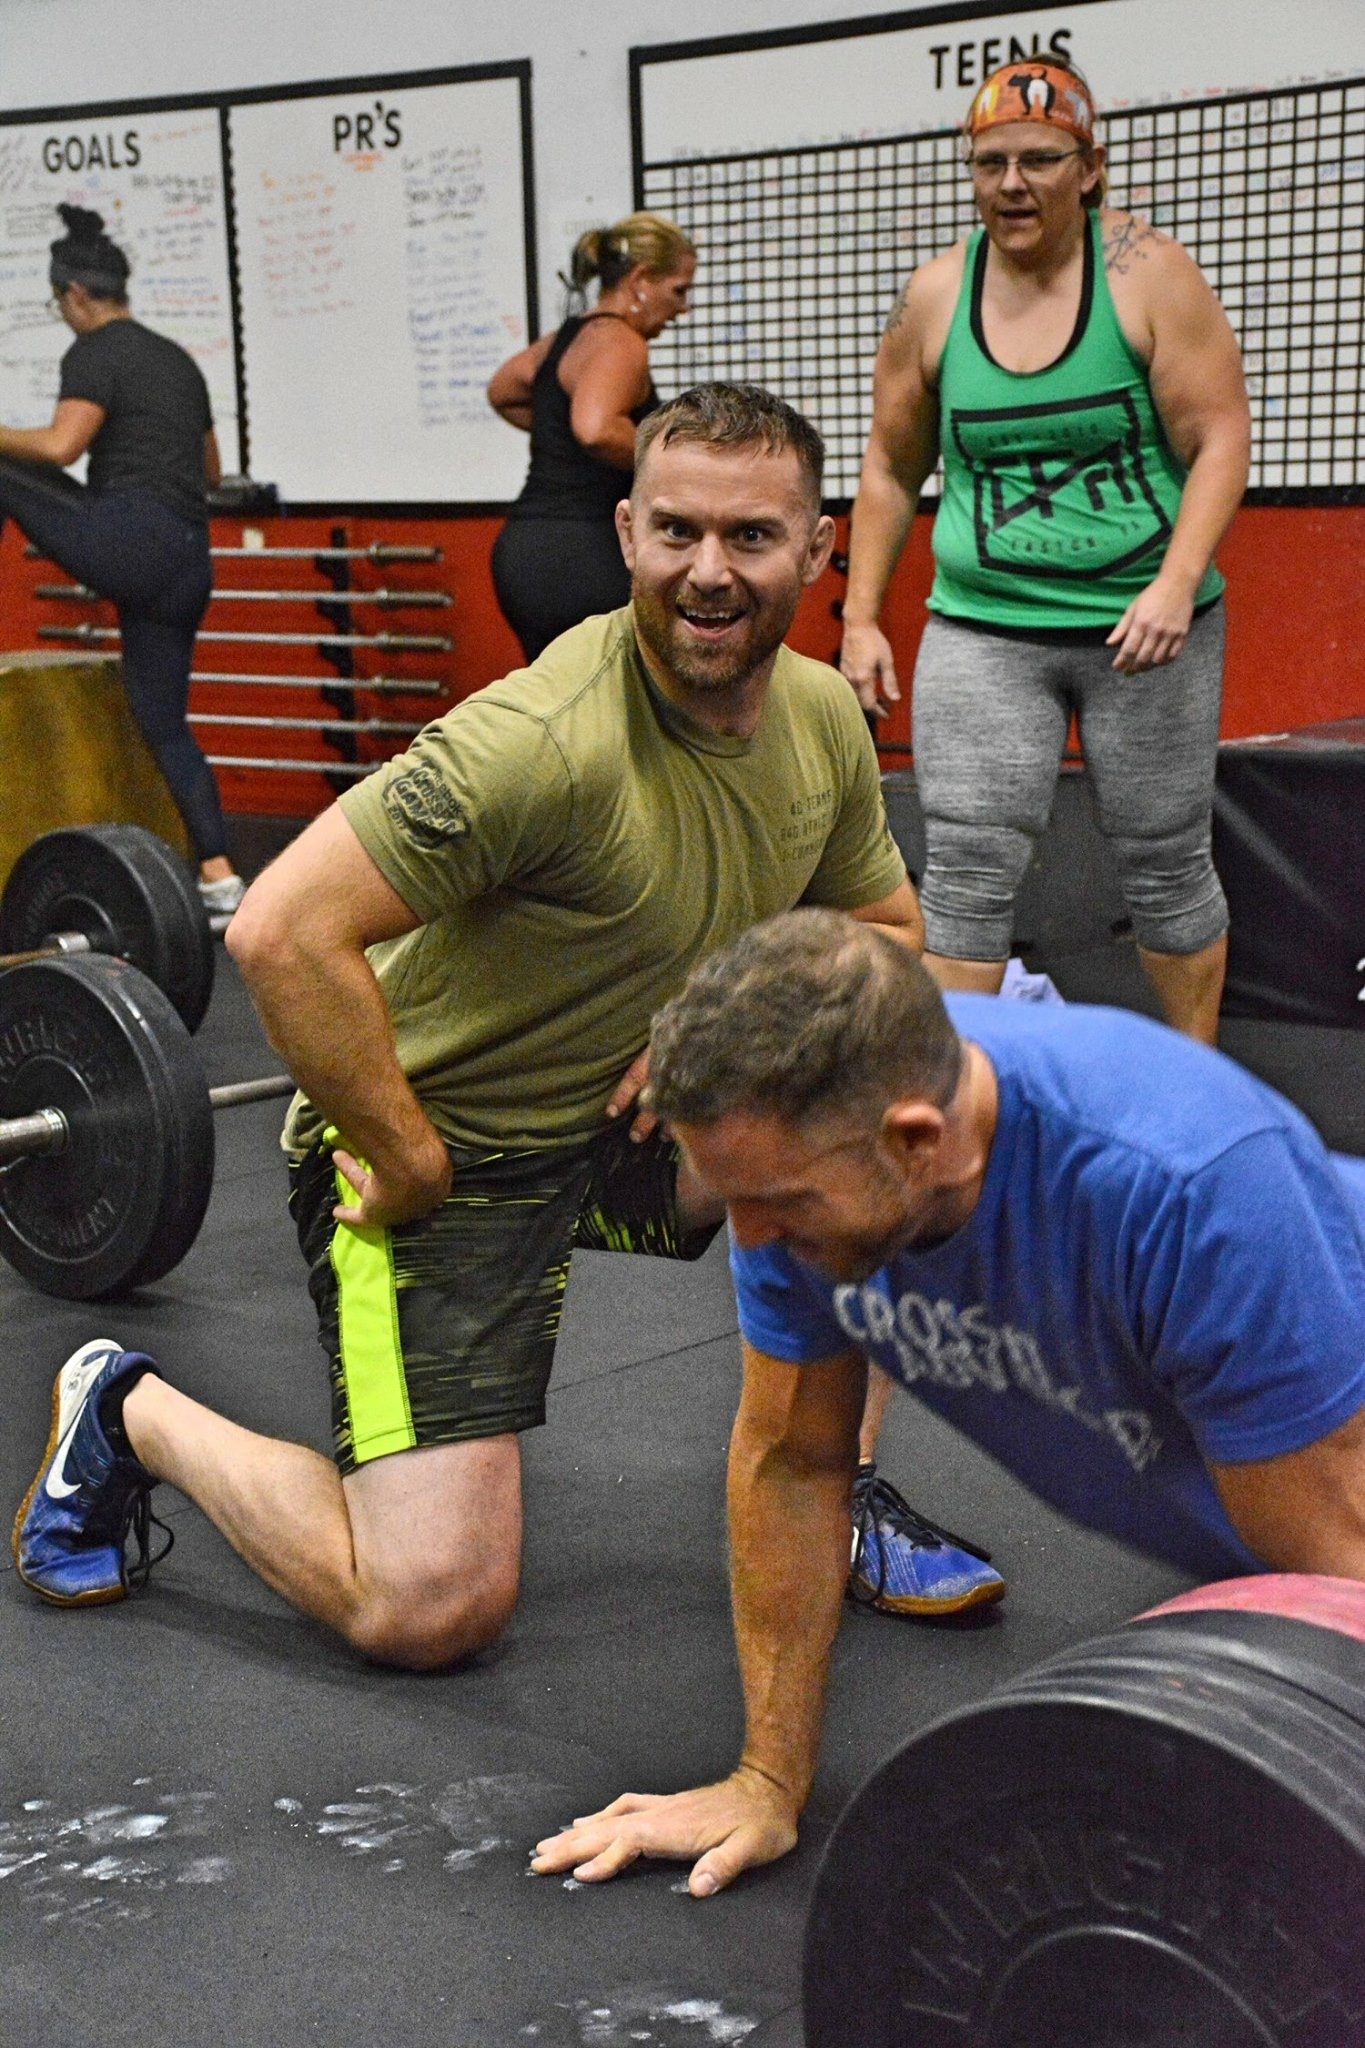 Wednesday, October 24 WOD